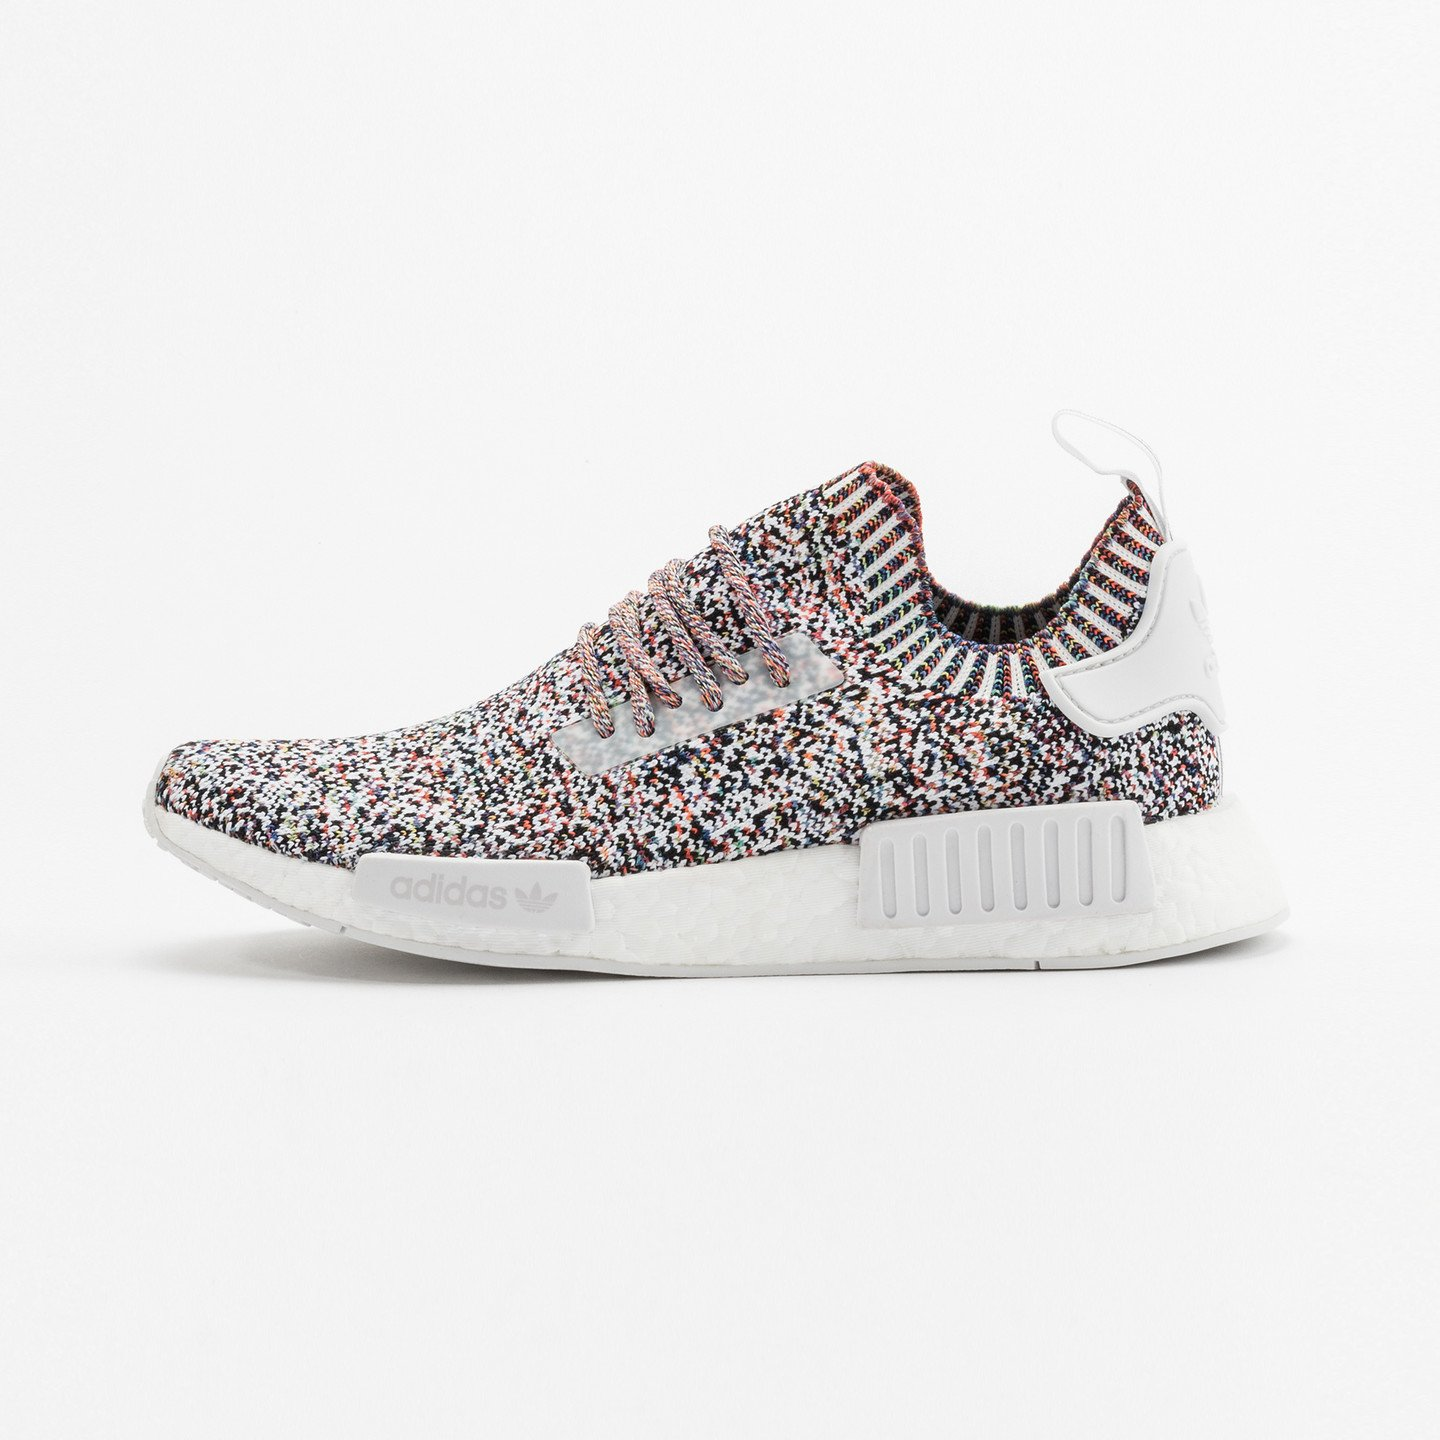 Adidas NMD R1 PK 'Colour Static' Core White / Multi BW1126